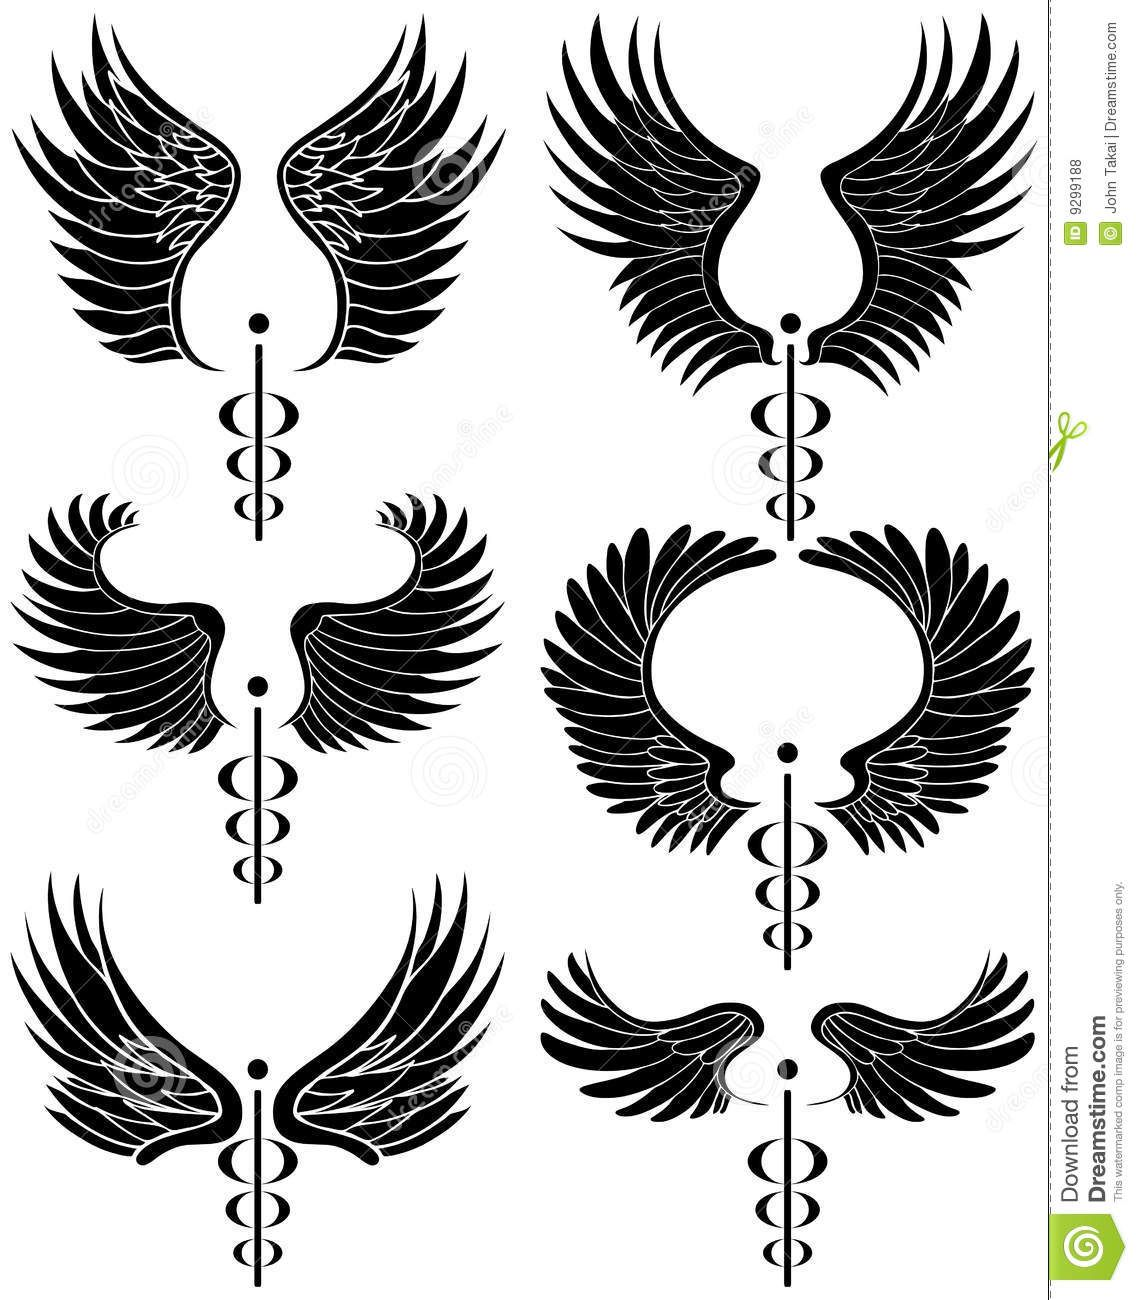 The caduceus coil google search meta pinterest tattoo caduceus medical symbol set of 6 black and white buycottarizona Image collections